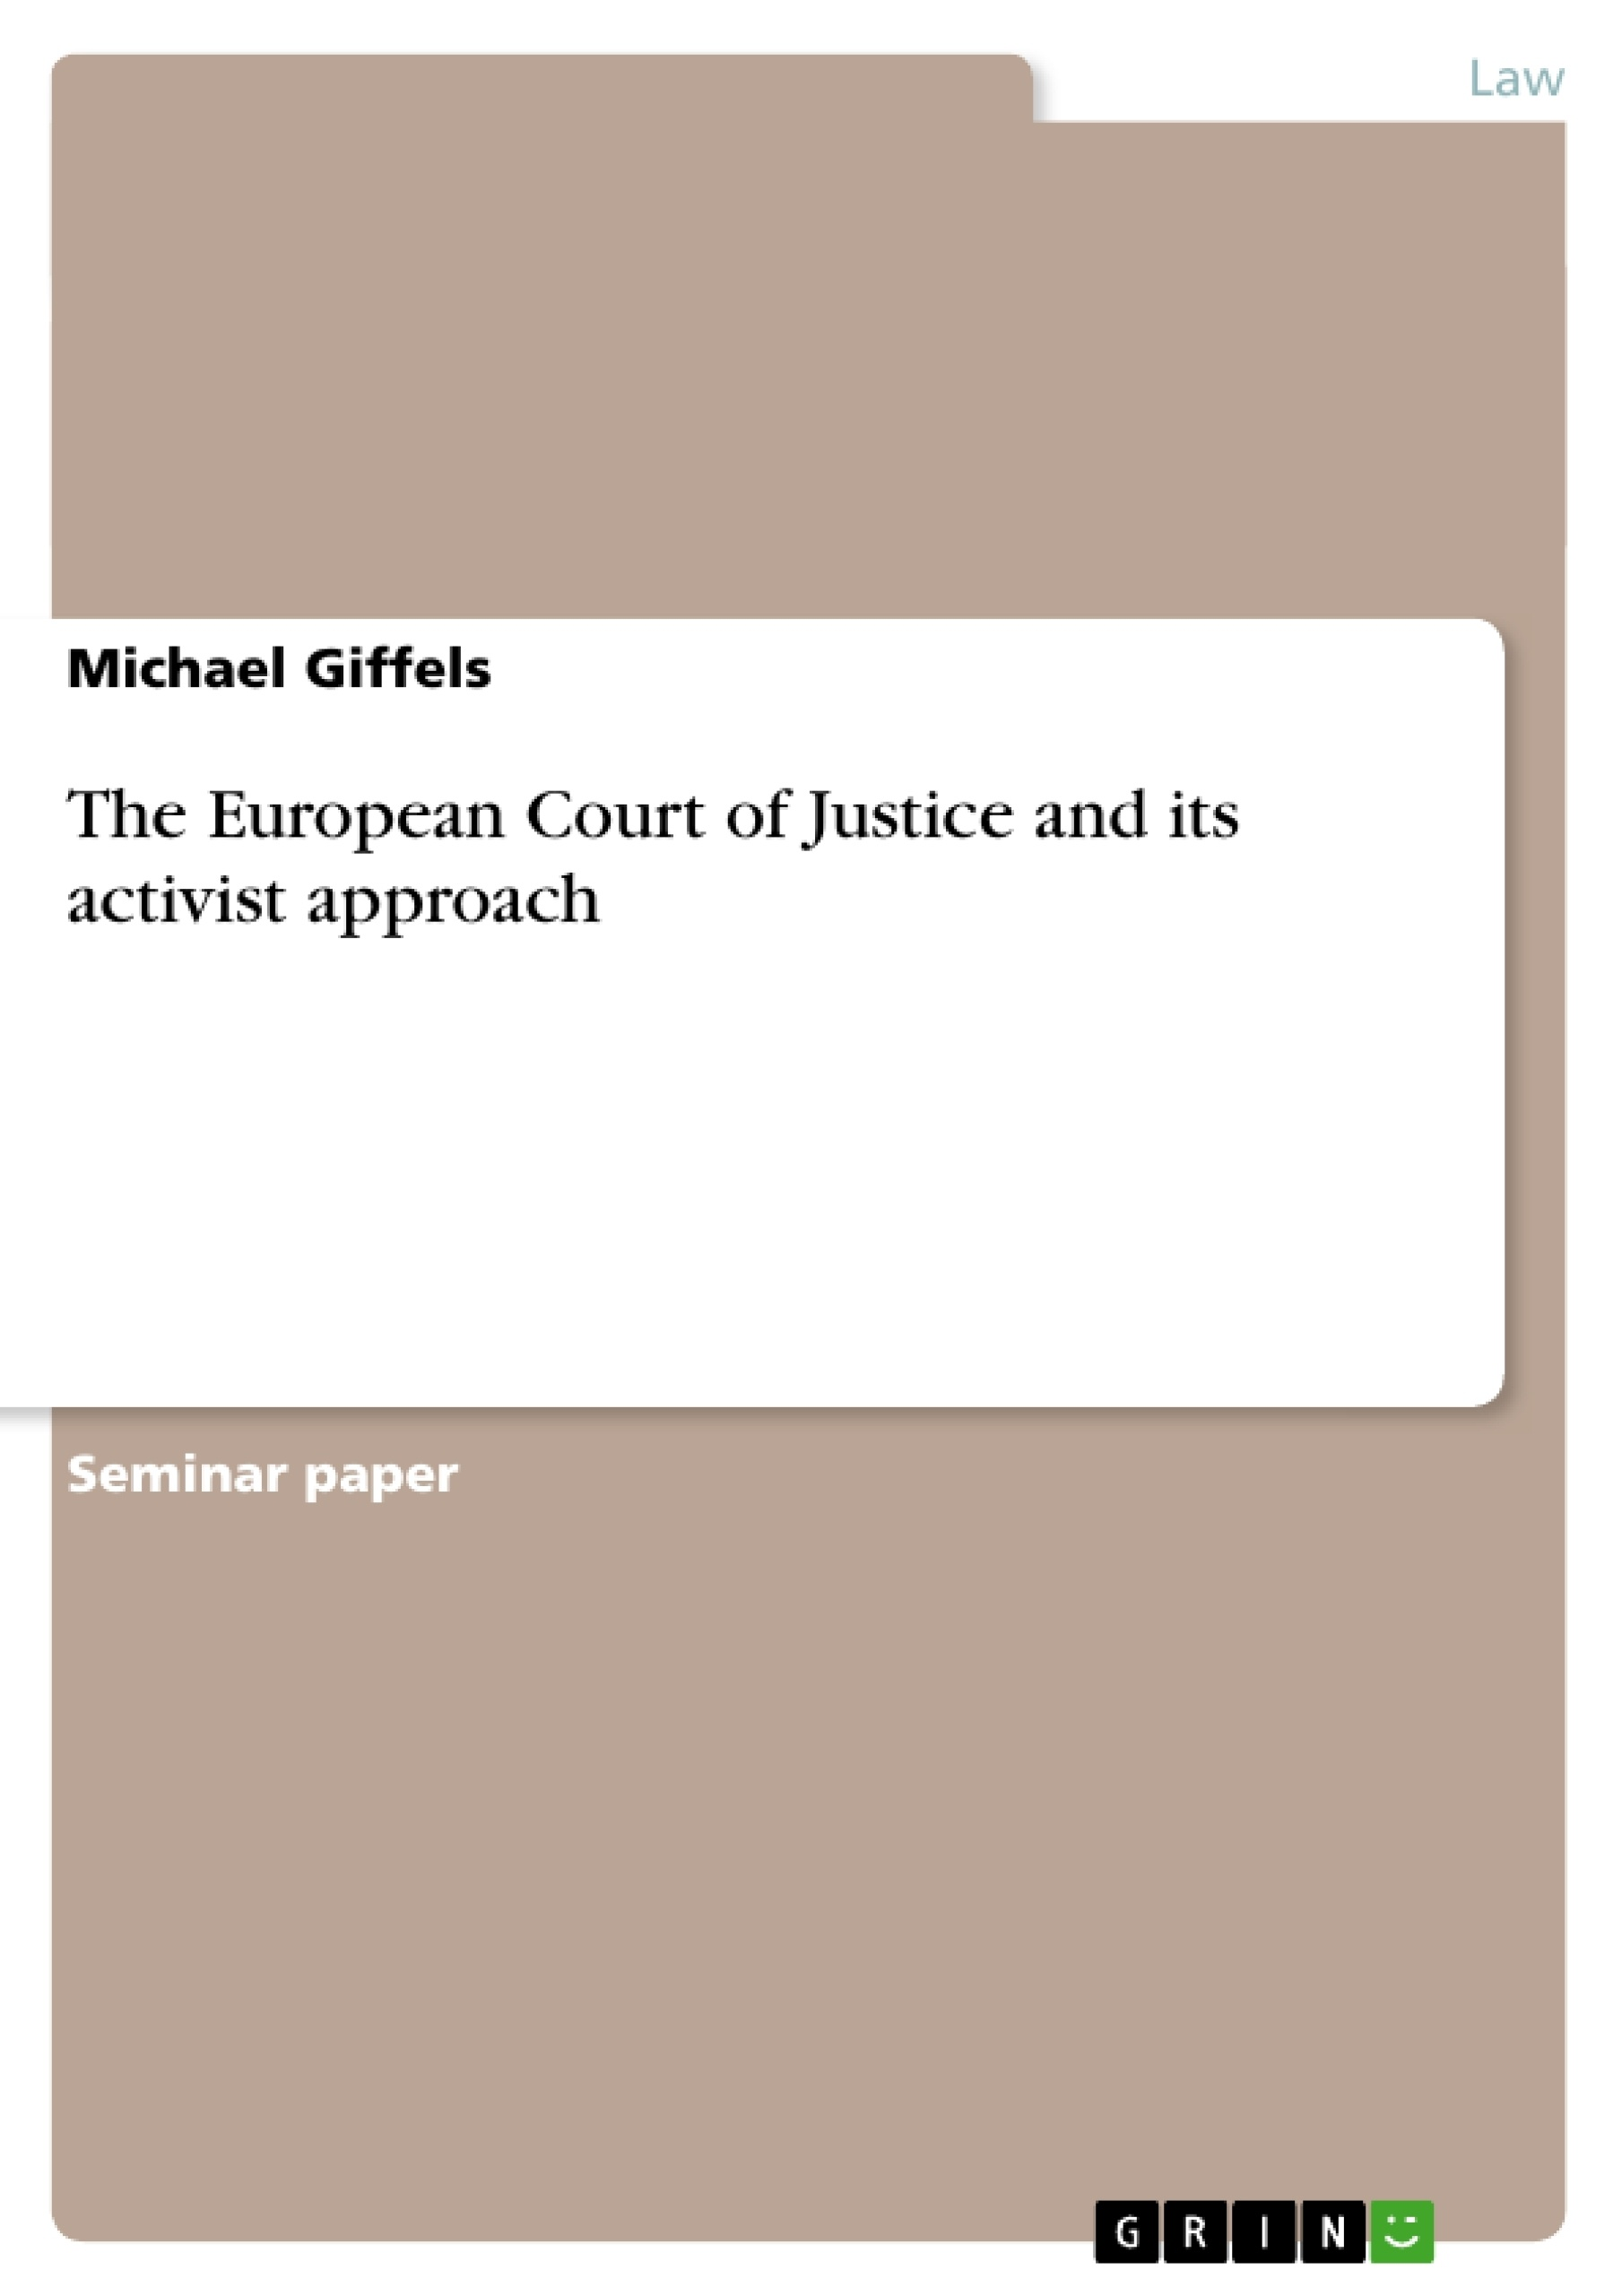 Title: The European Court of Justice and its activist approach